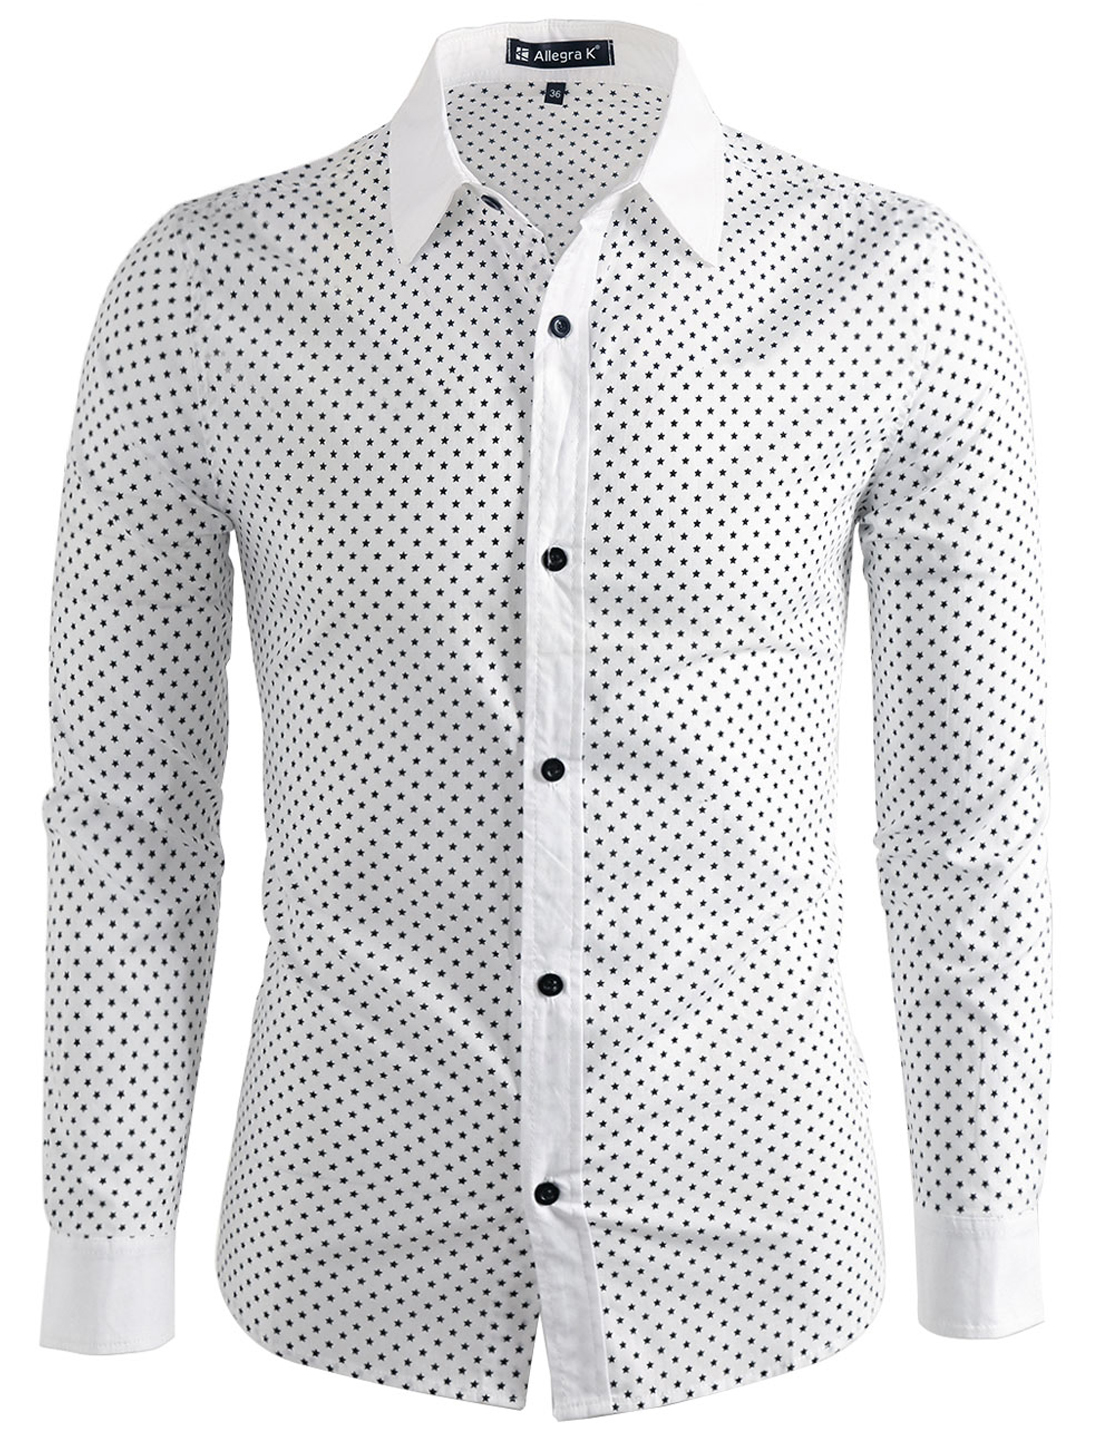 Men Slim Fit Allover Print Round Hem Button Down Long Sleeves Shirt White S